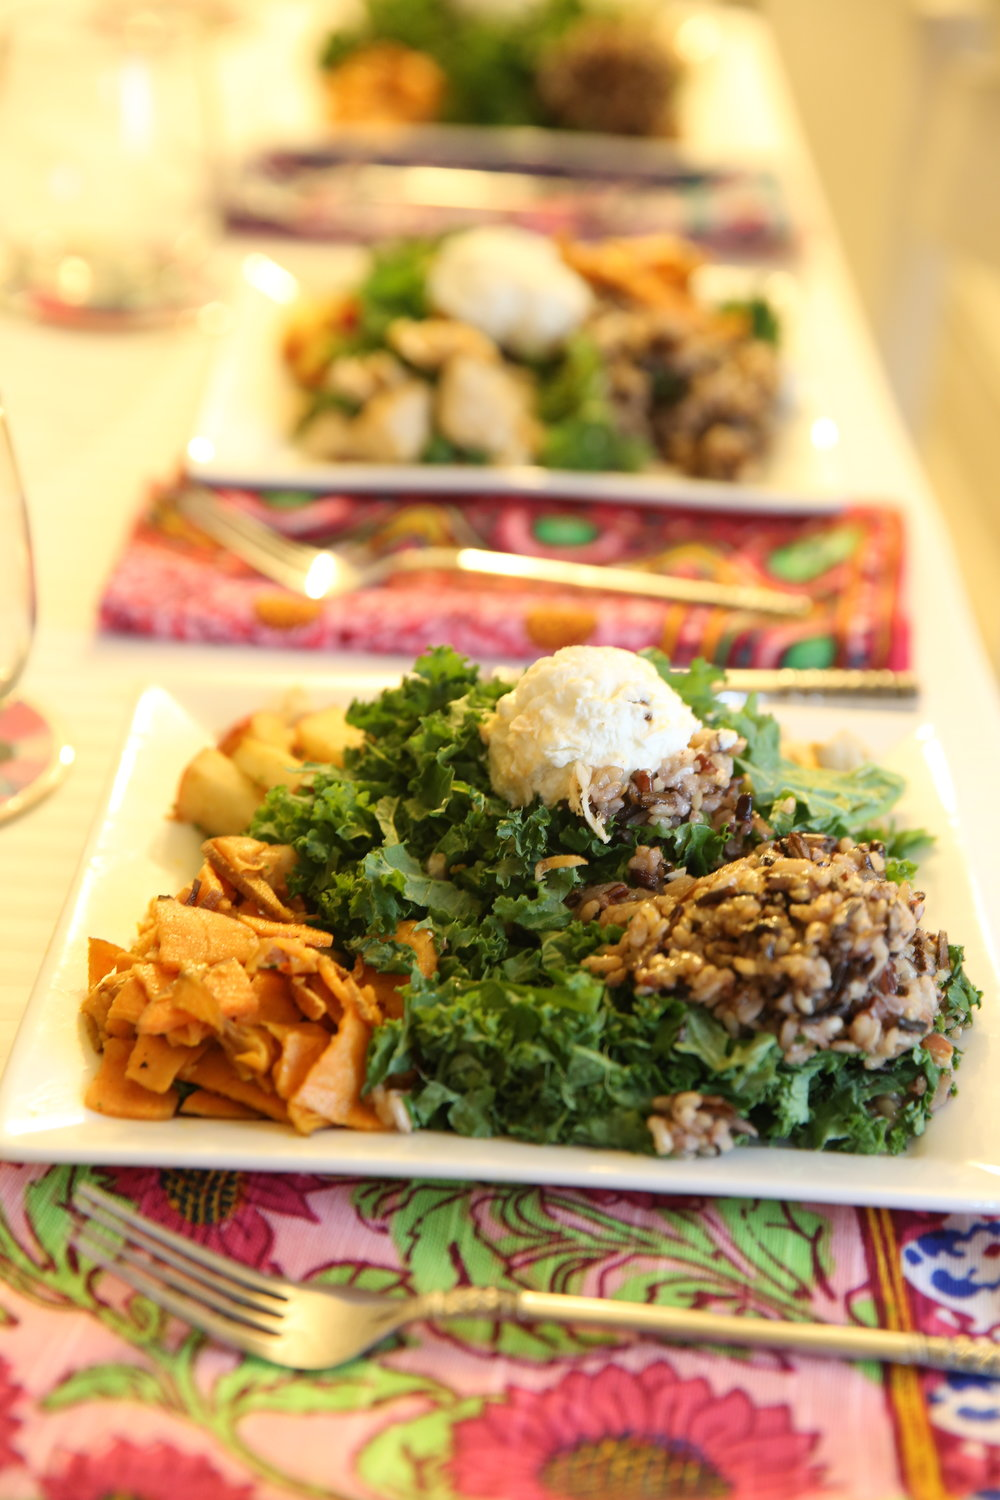 Meal Delivery in Boston Hosts Pop Up in Nepal